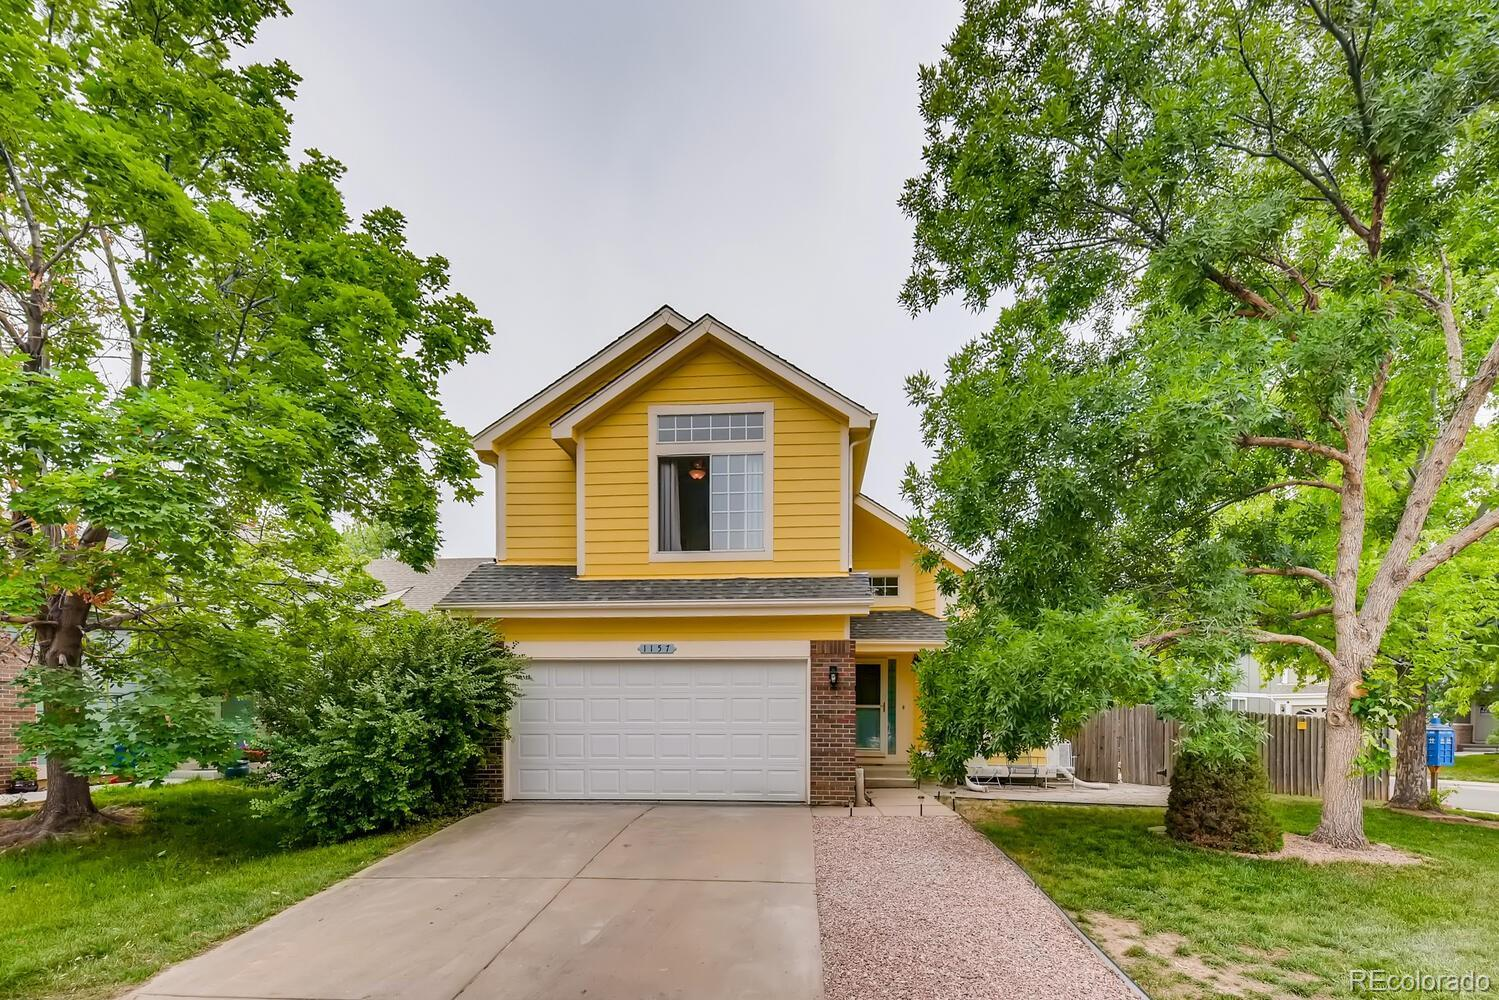 1157 W 132nd Place, Westminster, CO 80234 - #: 4218334